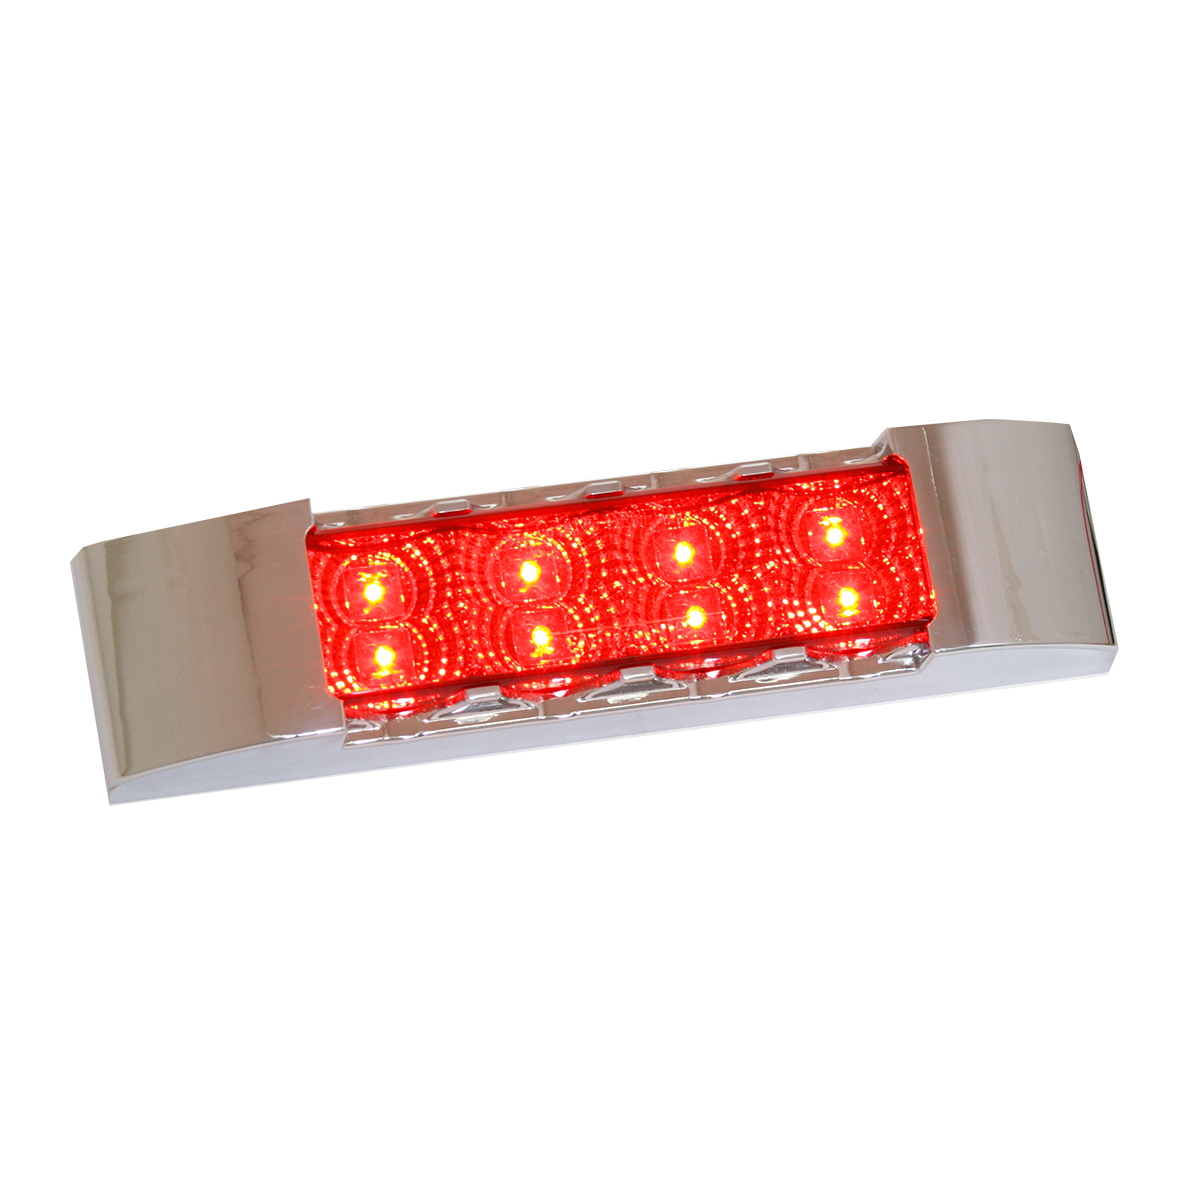 76172 Slim Rectangular Spyder LED Light in Red/Red with Chrome Plastic Bezel